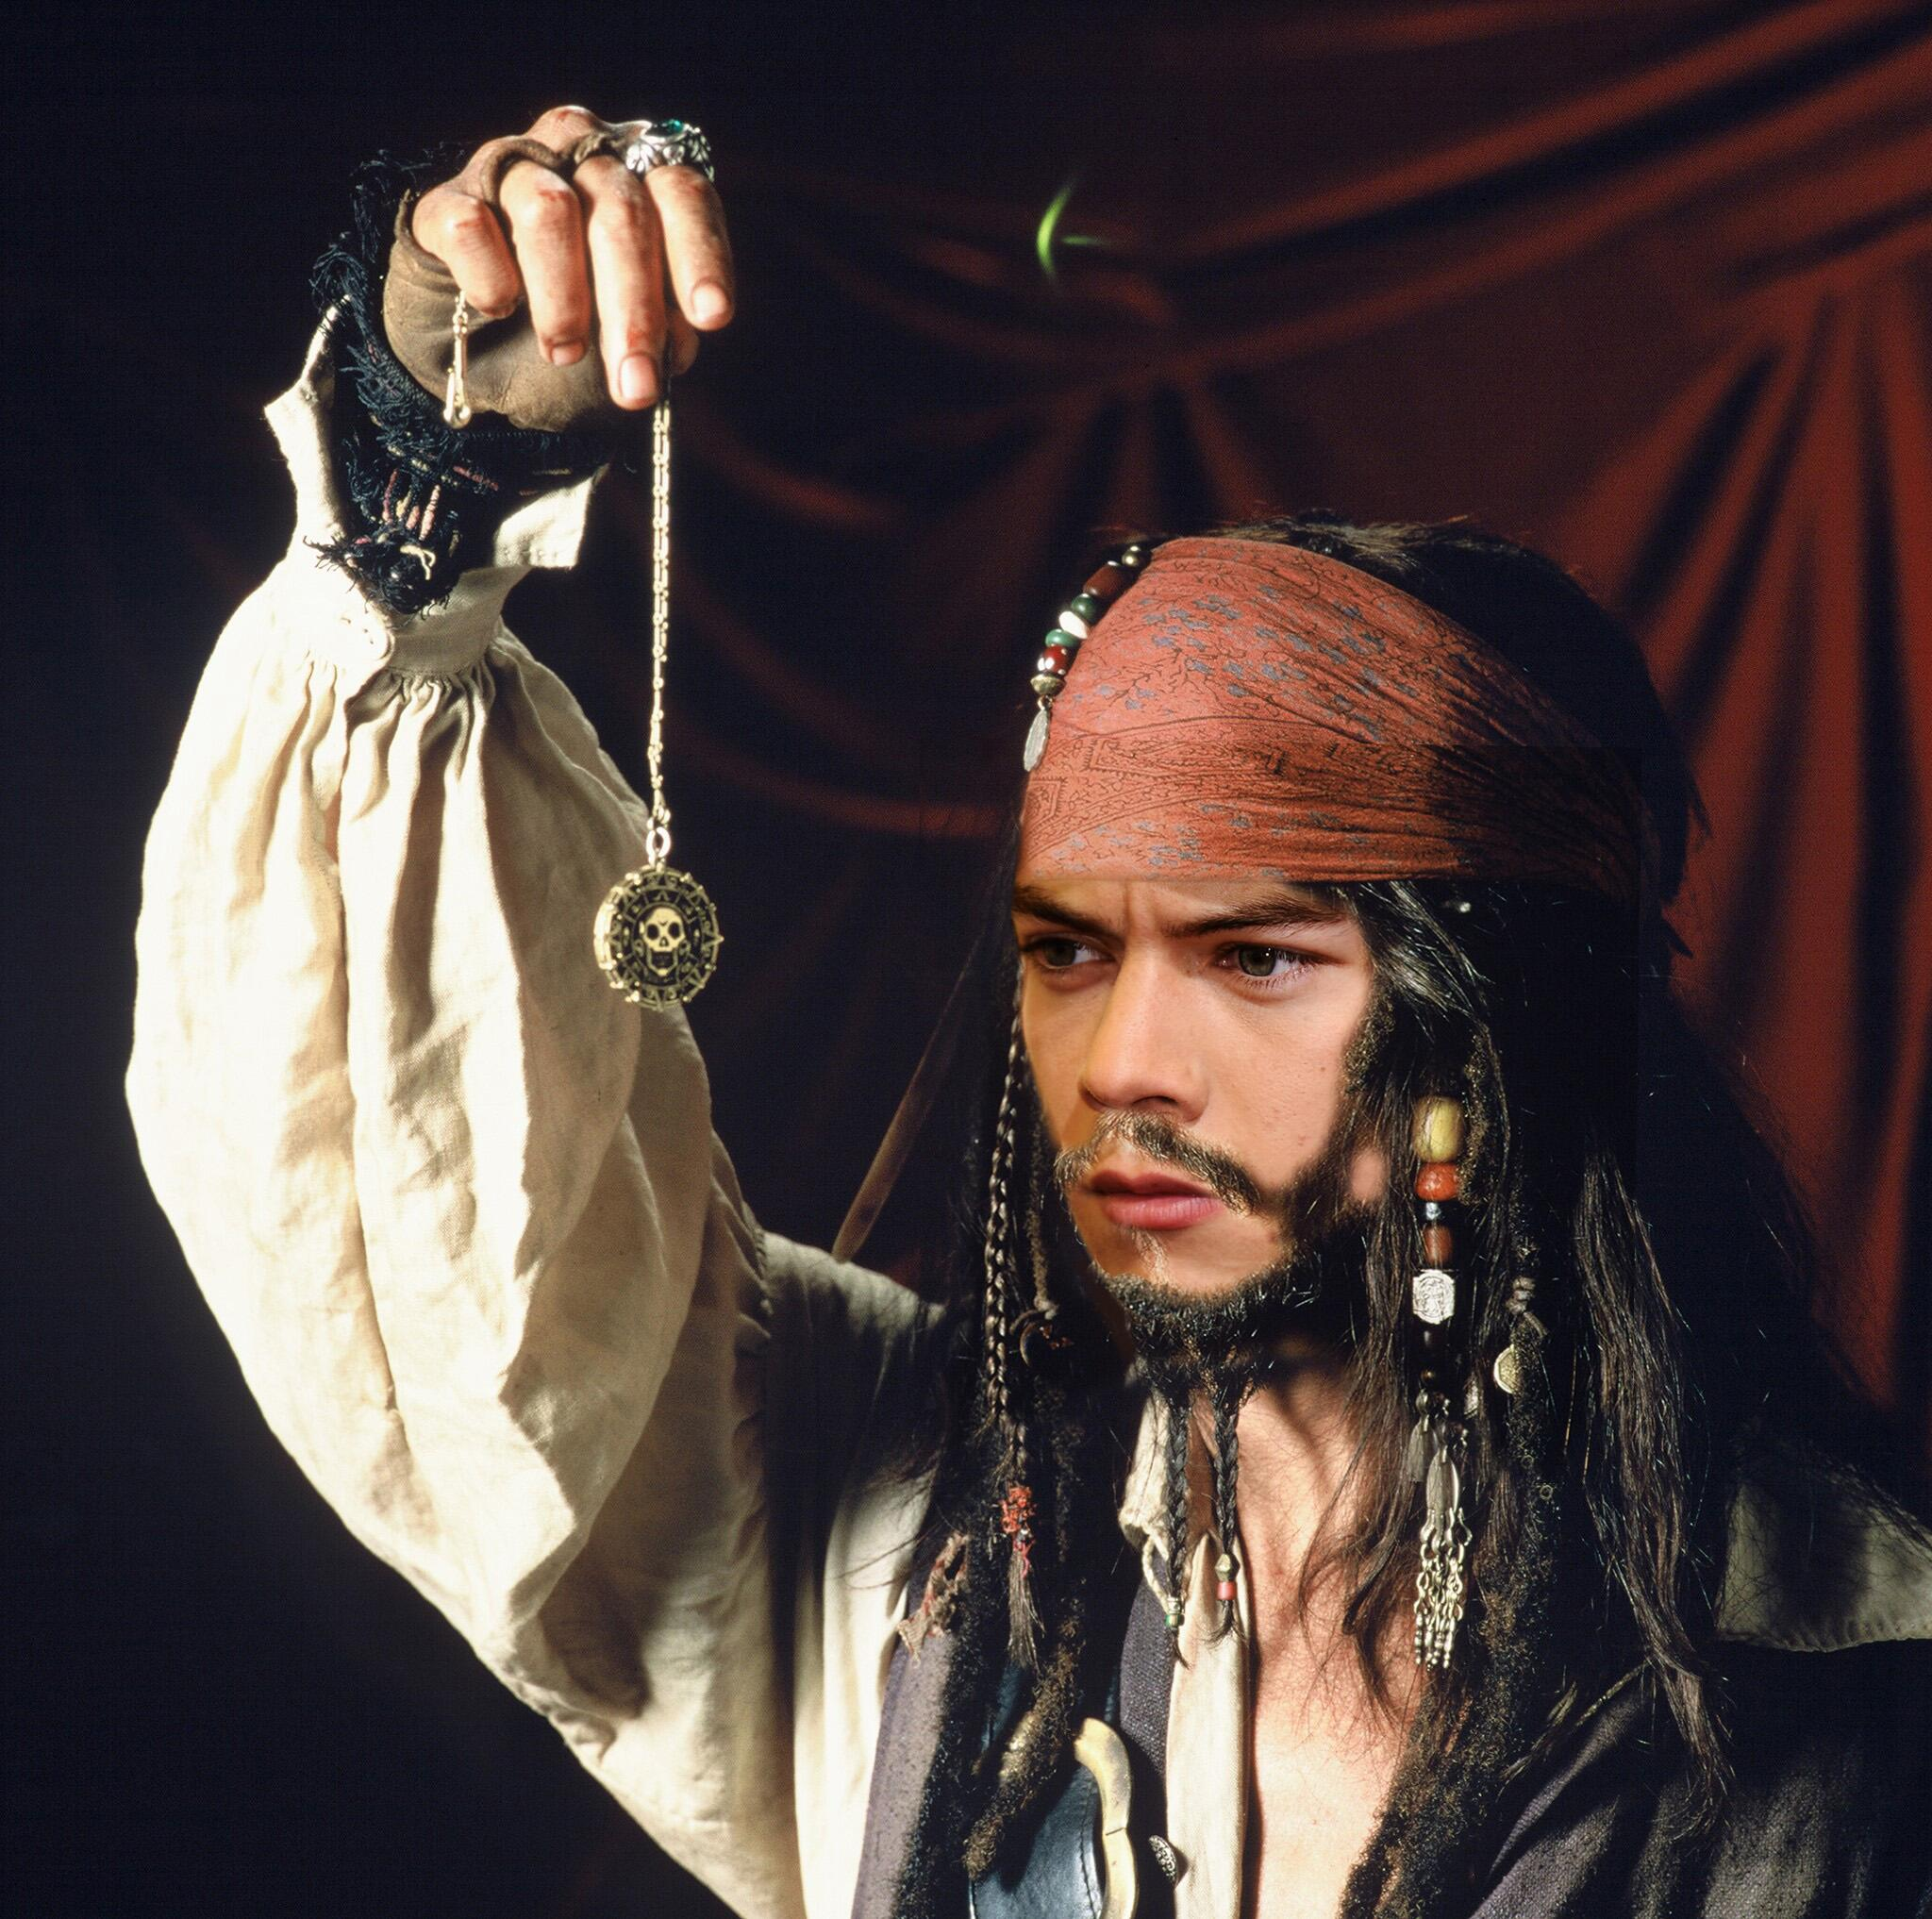 How about @Harry_Styles as Capt. Jack Sparrow? http://t.co/lcEy8O19ww http://t.co/2y3POIHEPe